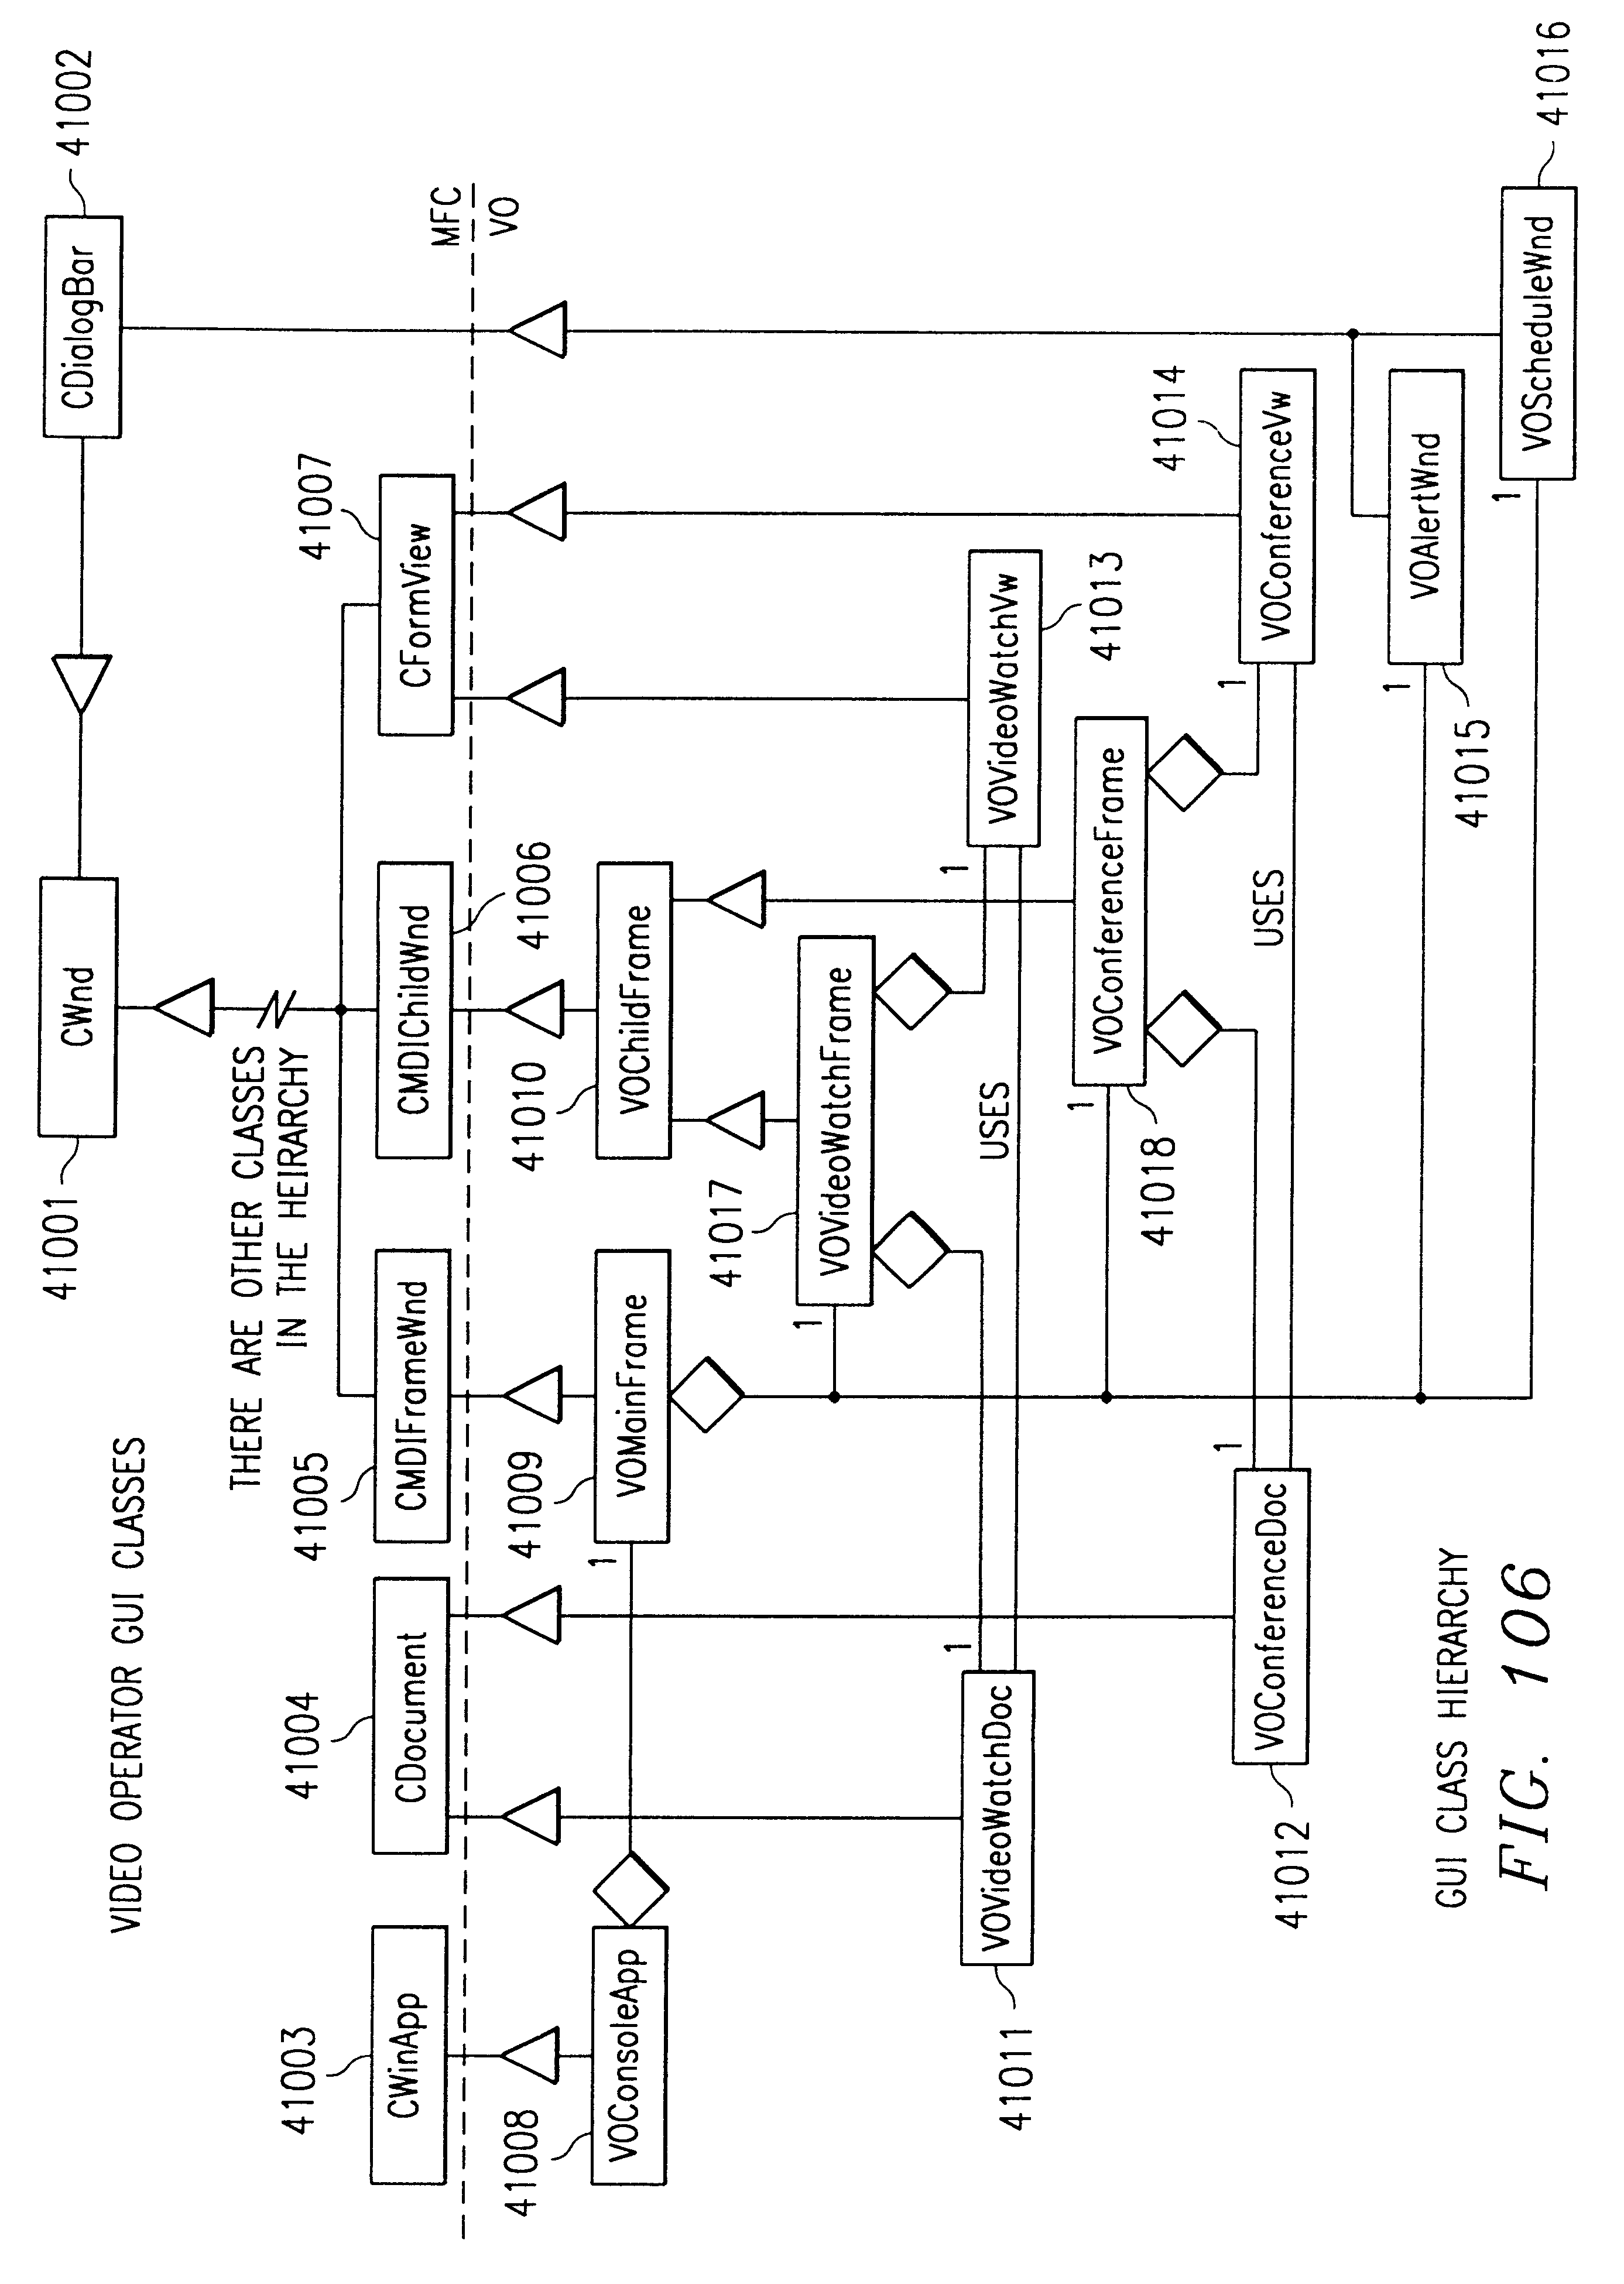 Patent Us 6335927 B1 Router Block Diagram Furthermore Cisco Work Moreover Global Images